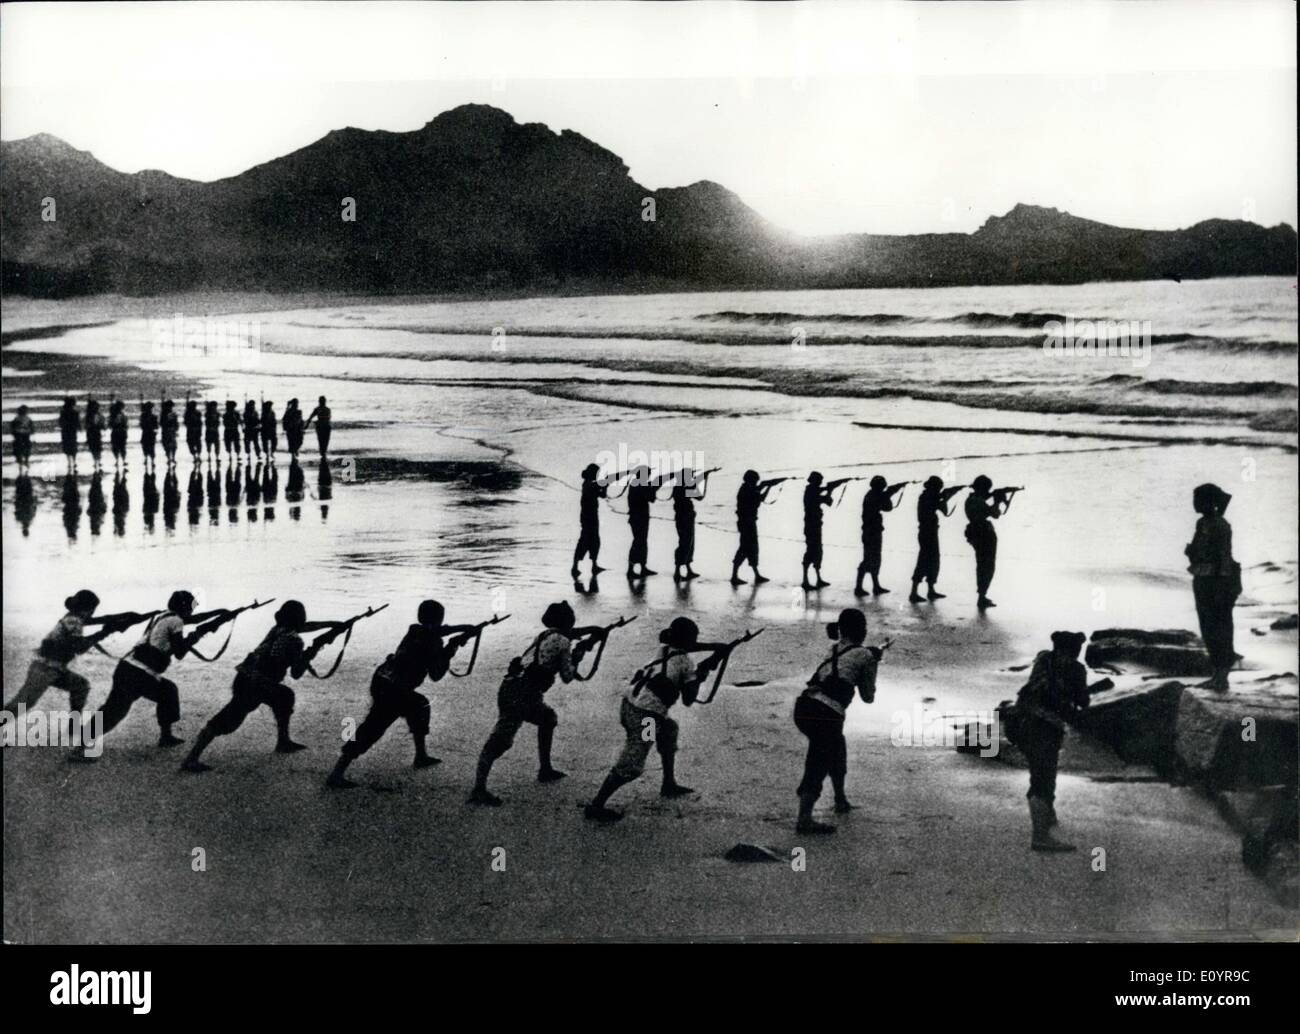 Apr. 04, 1971 - No Time For Ping Pong: Chinese militia Women in training for coastal defense in Fukien Province, belong to the Hsia-an production Brigade in Changpu Country. They were trained to replace men in work usually undertaken by men,and Participate in productive work during the day, and stand Sentry duty at night in their Coastal Section. - Stock Image